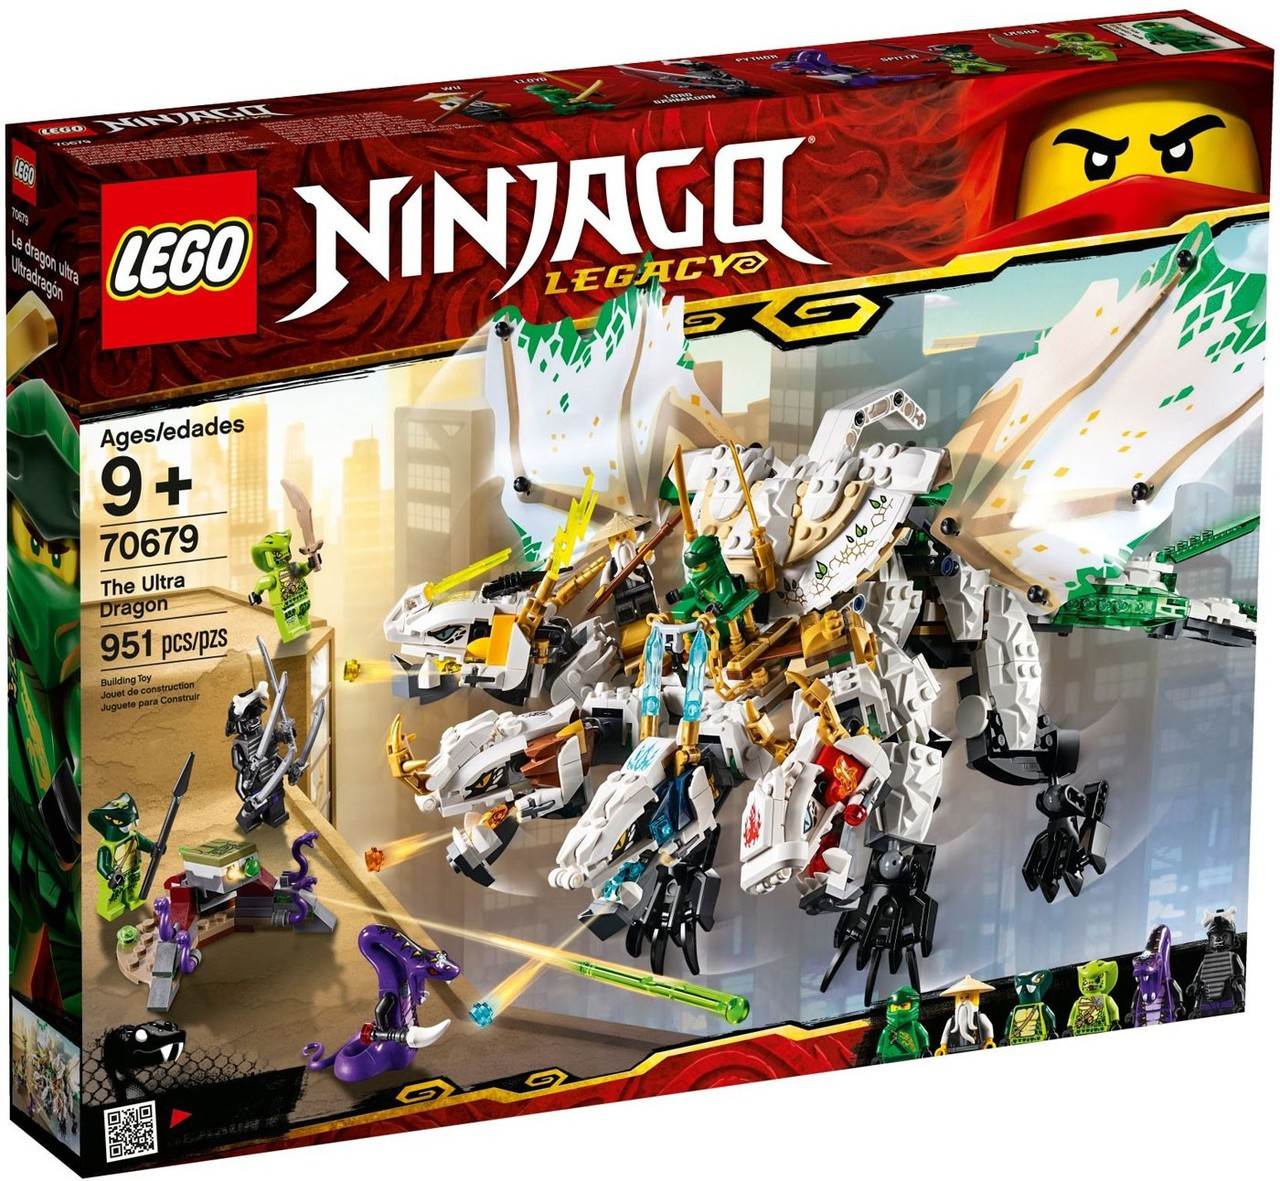 Legacy The Dragon Set70679 Lego Ninjago Ultra 3LAR54j